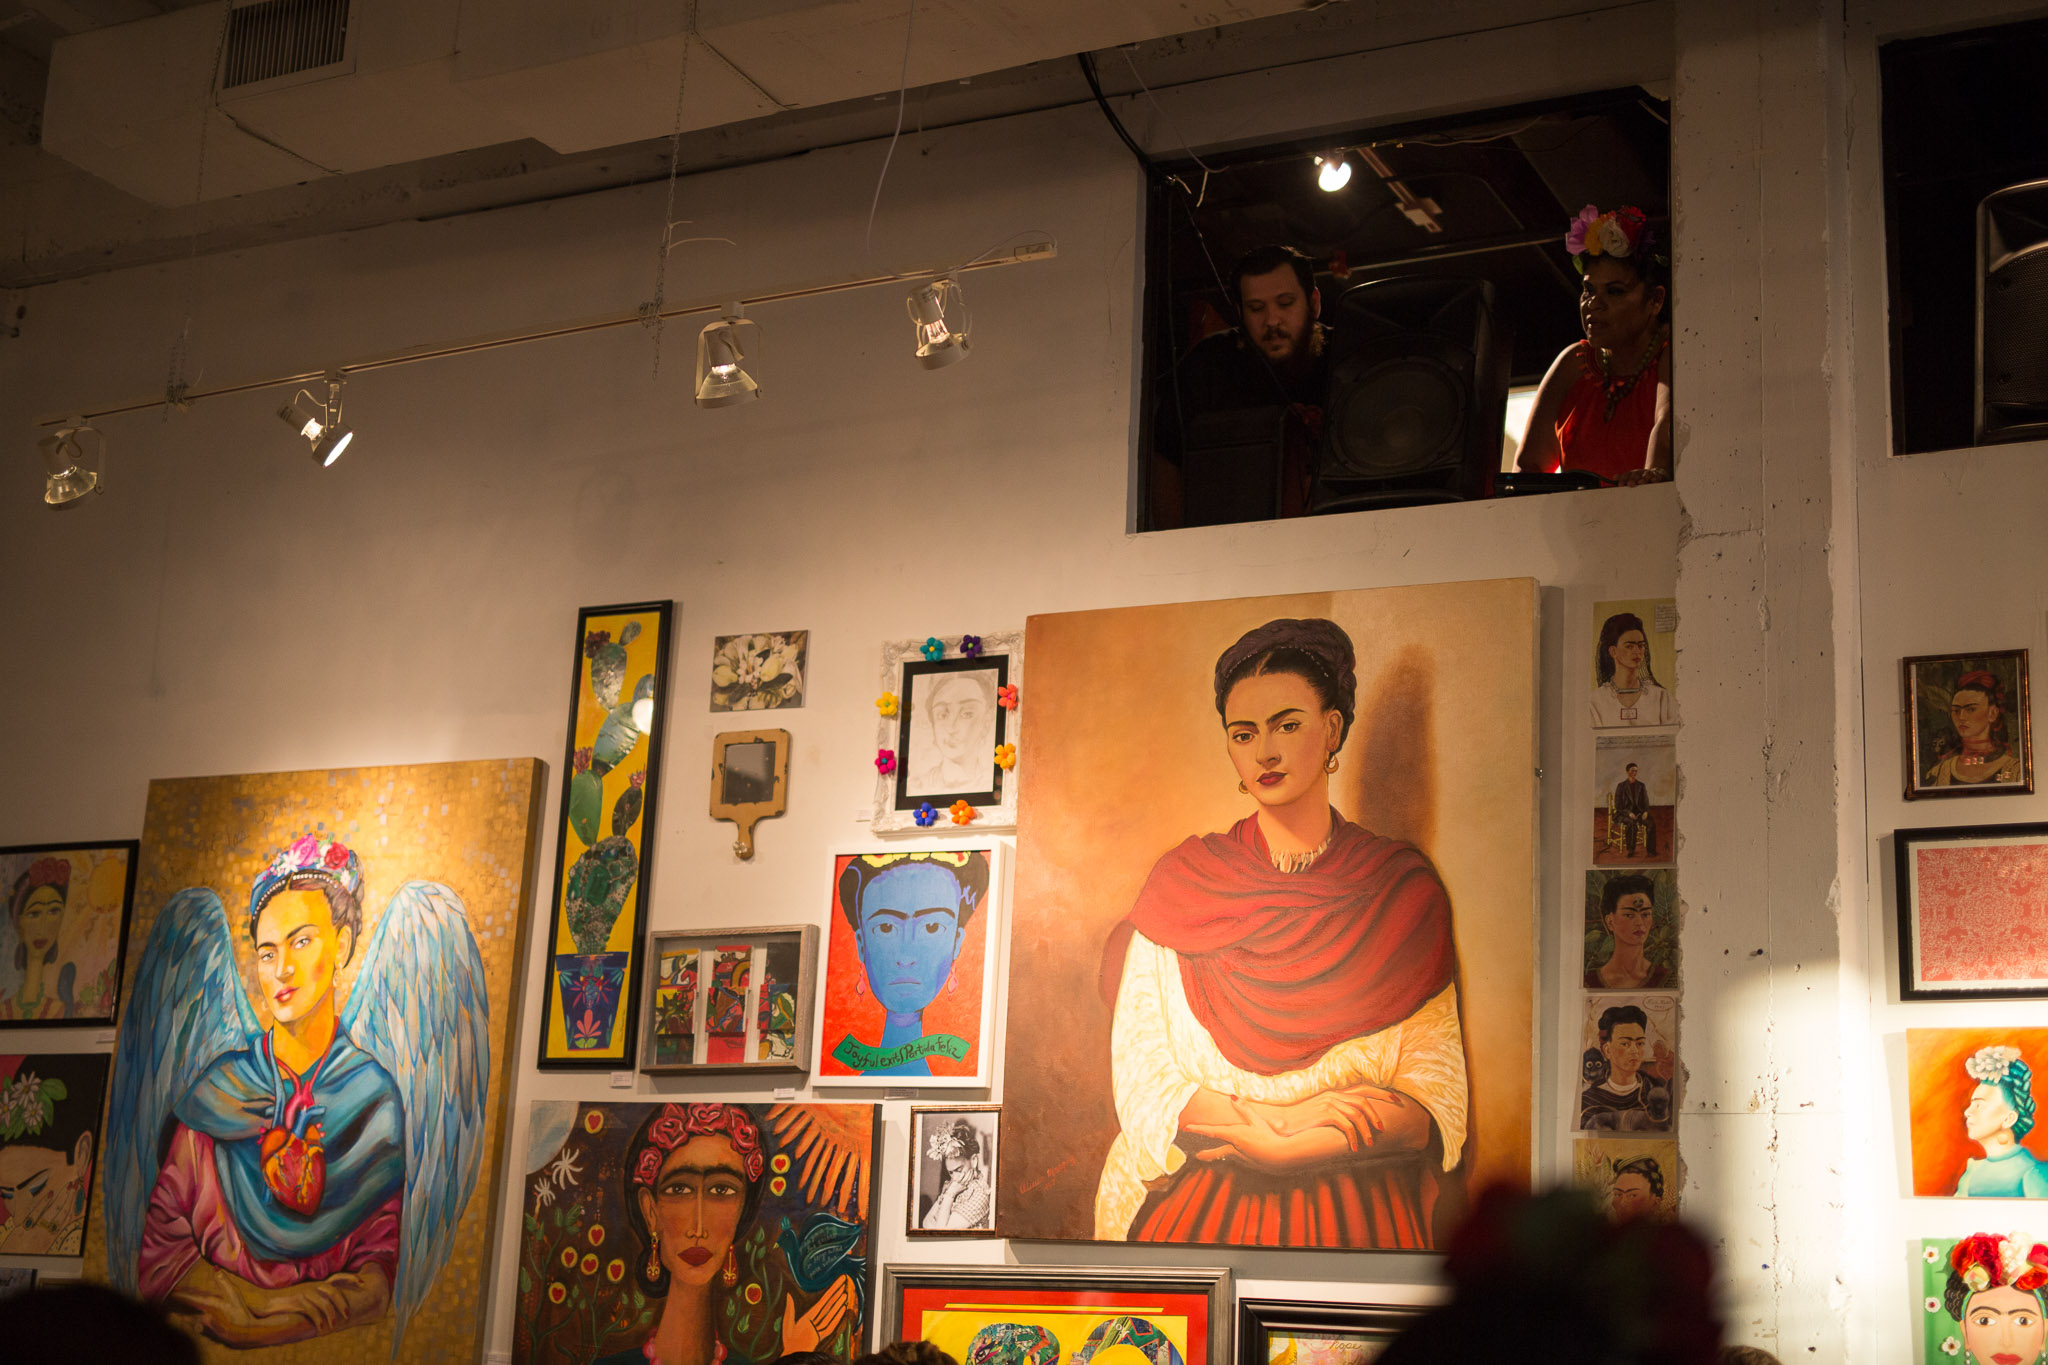 Paintings of Frida Kahlo adorn the walls of Brick at Blue Star Arts Complex. Photo by Scott Ball.